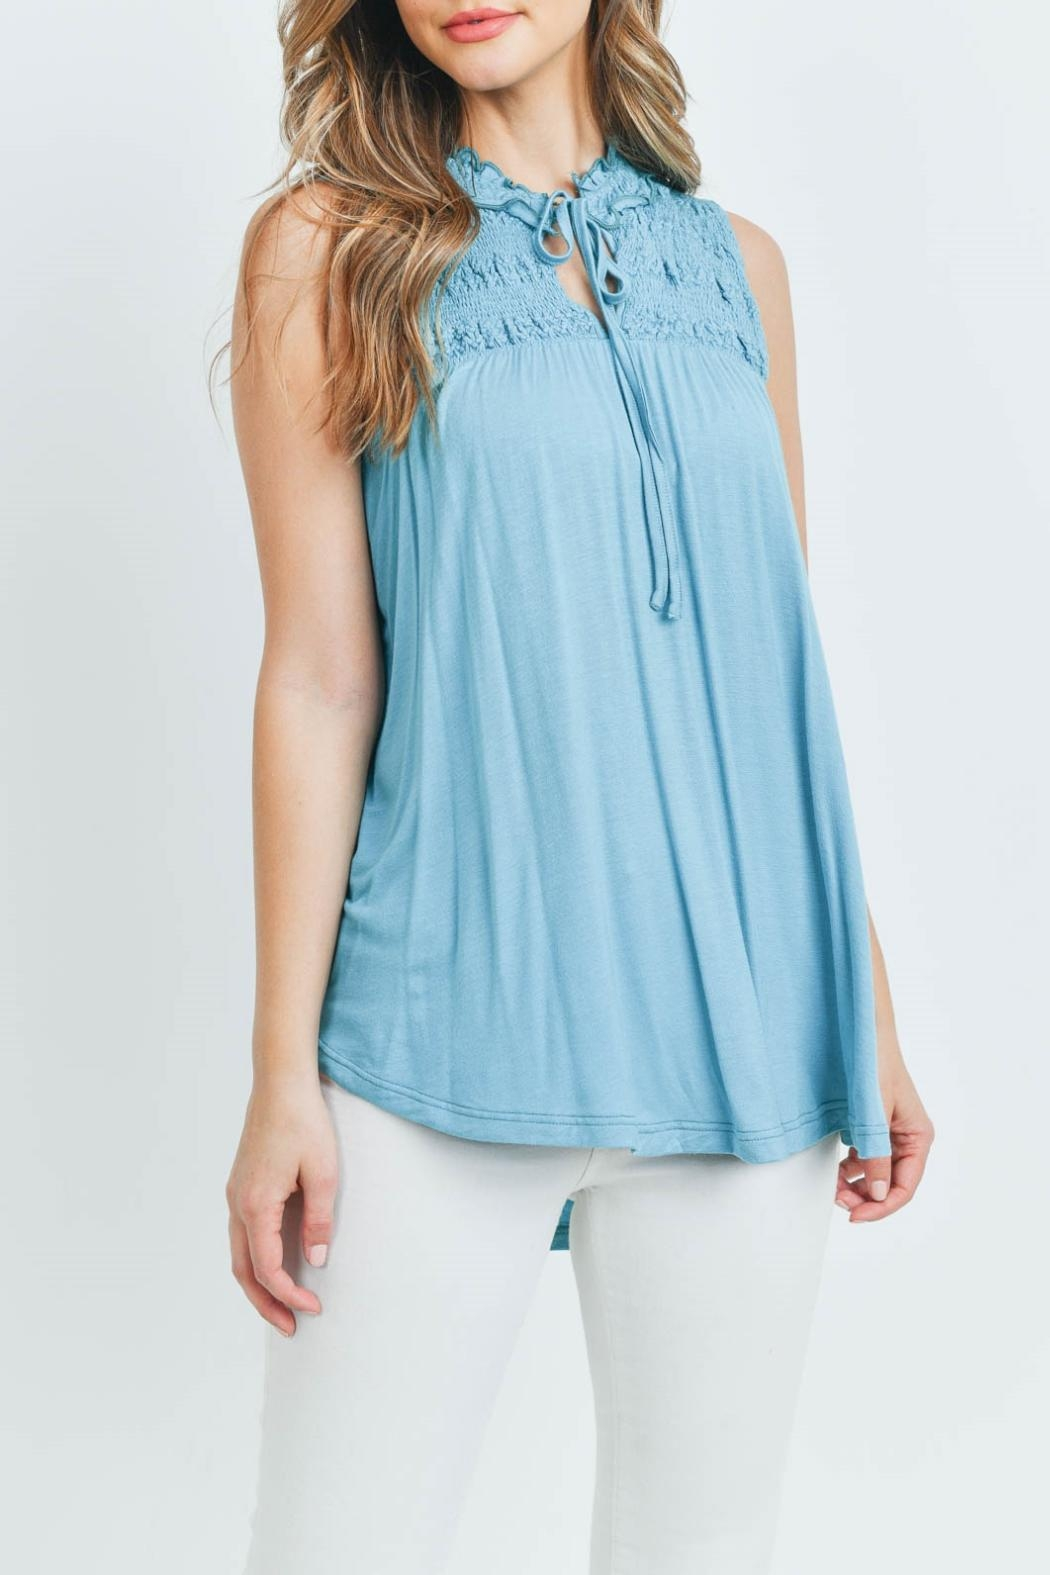 L Love Turquoise Top - Front Full Image